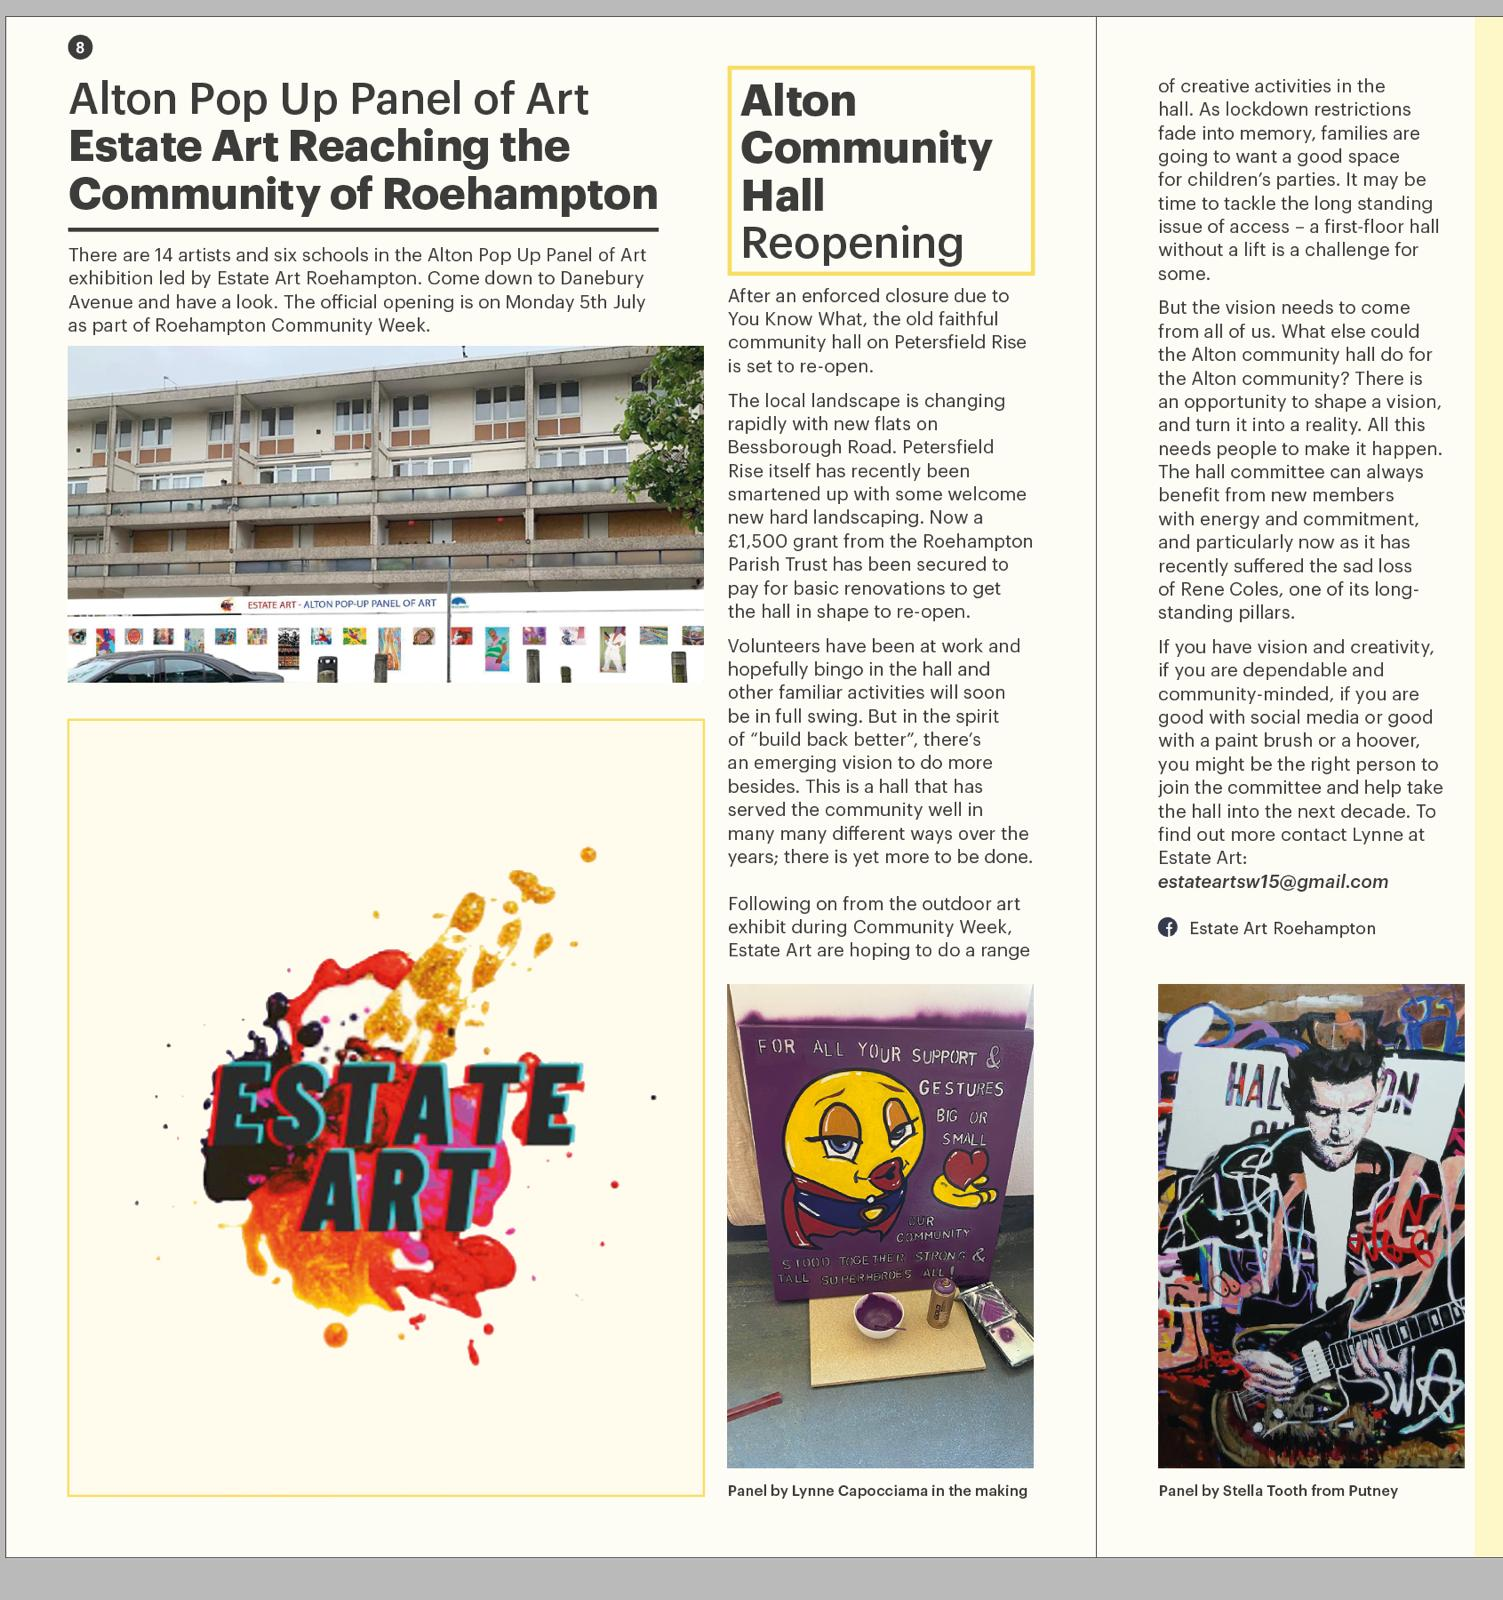 Roehampton Voice: Alton pop up panel of art article featuring image of James Beck of Man by Stella Tooth